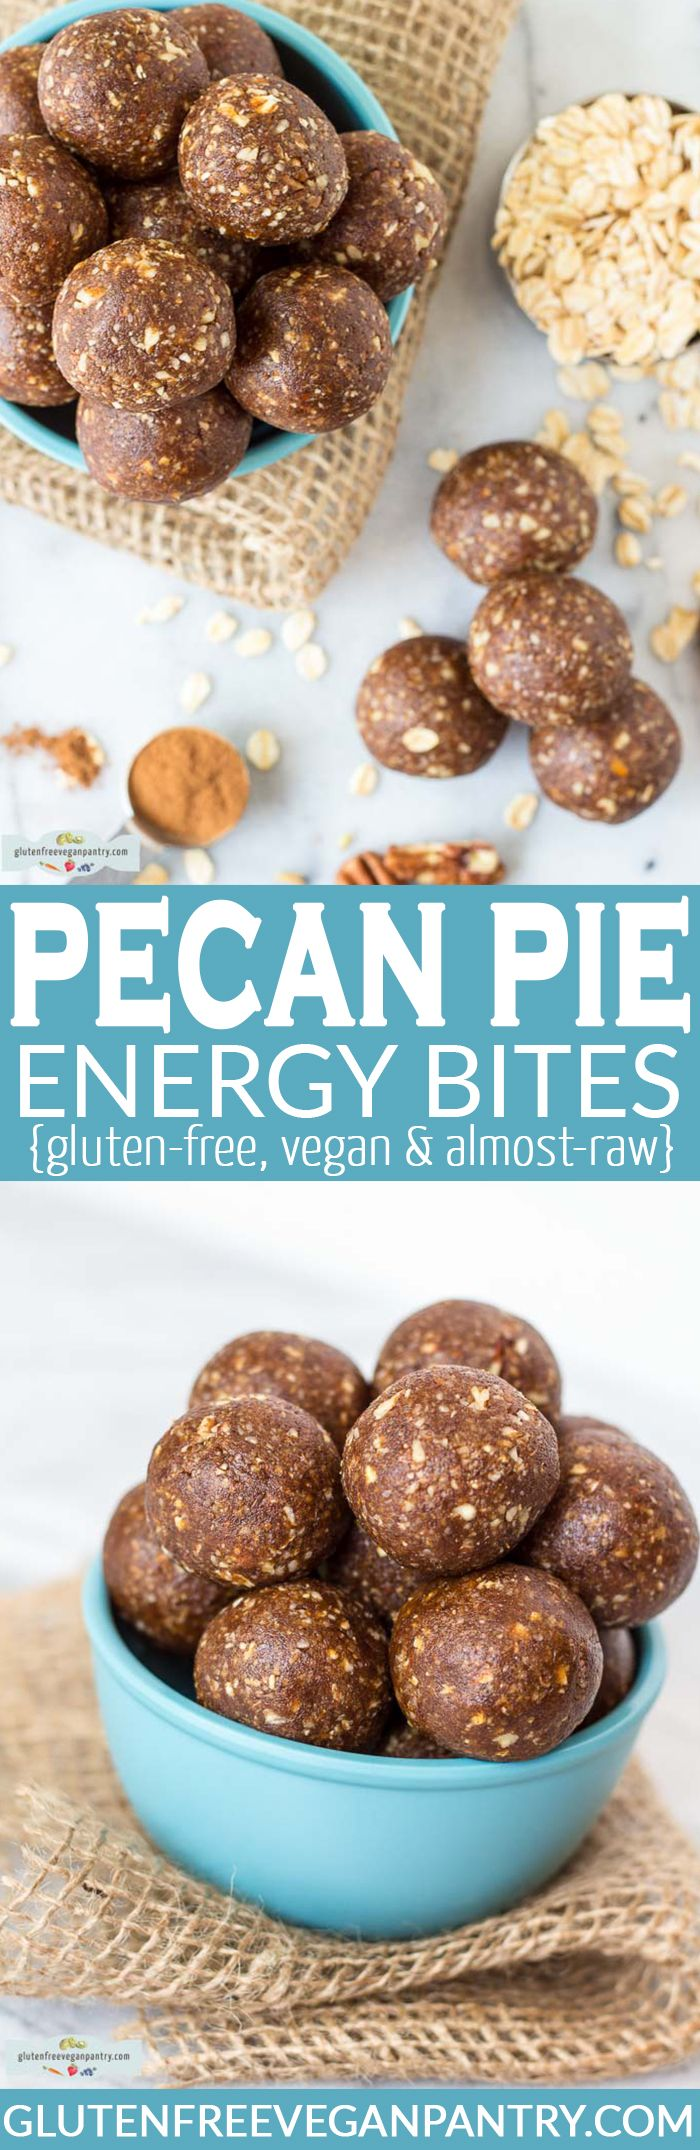 Pecan Pie Energy Bites - 5 ingredients, 15 minutes & incredible flavour! Vegan, gluten-free and almost-raw. All clean eating ingredients are used for this recipe. Pin now to make this healthy snack recipe later!